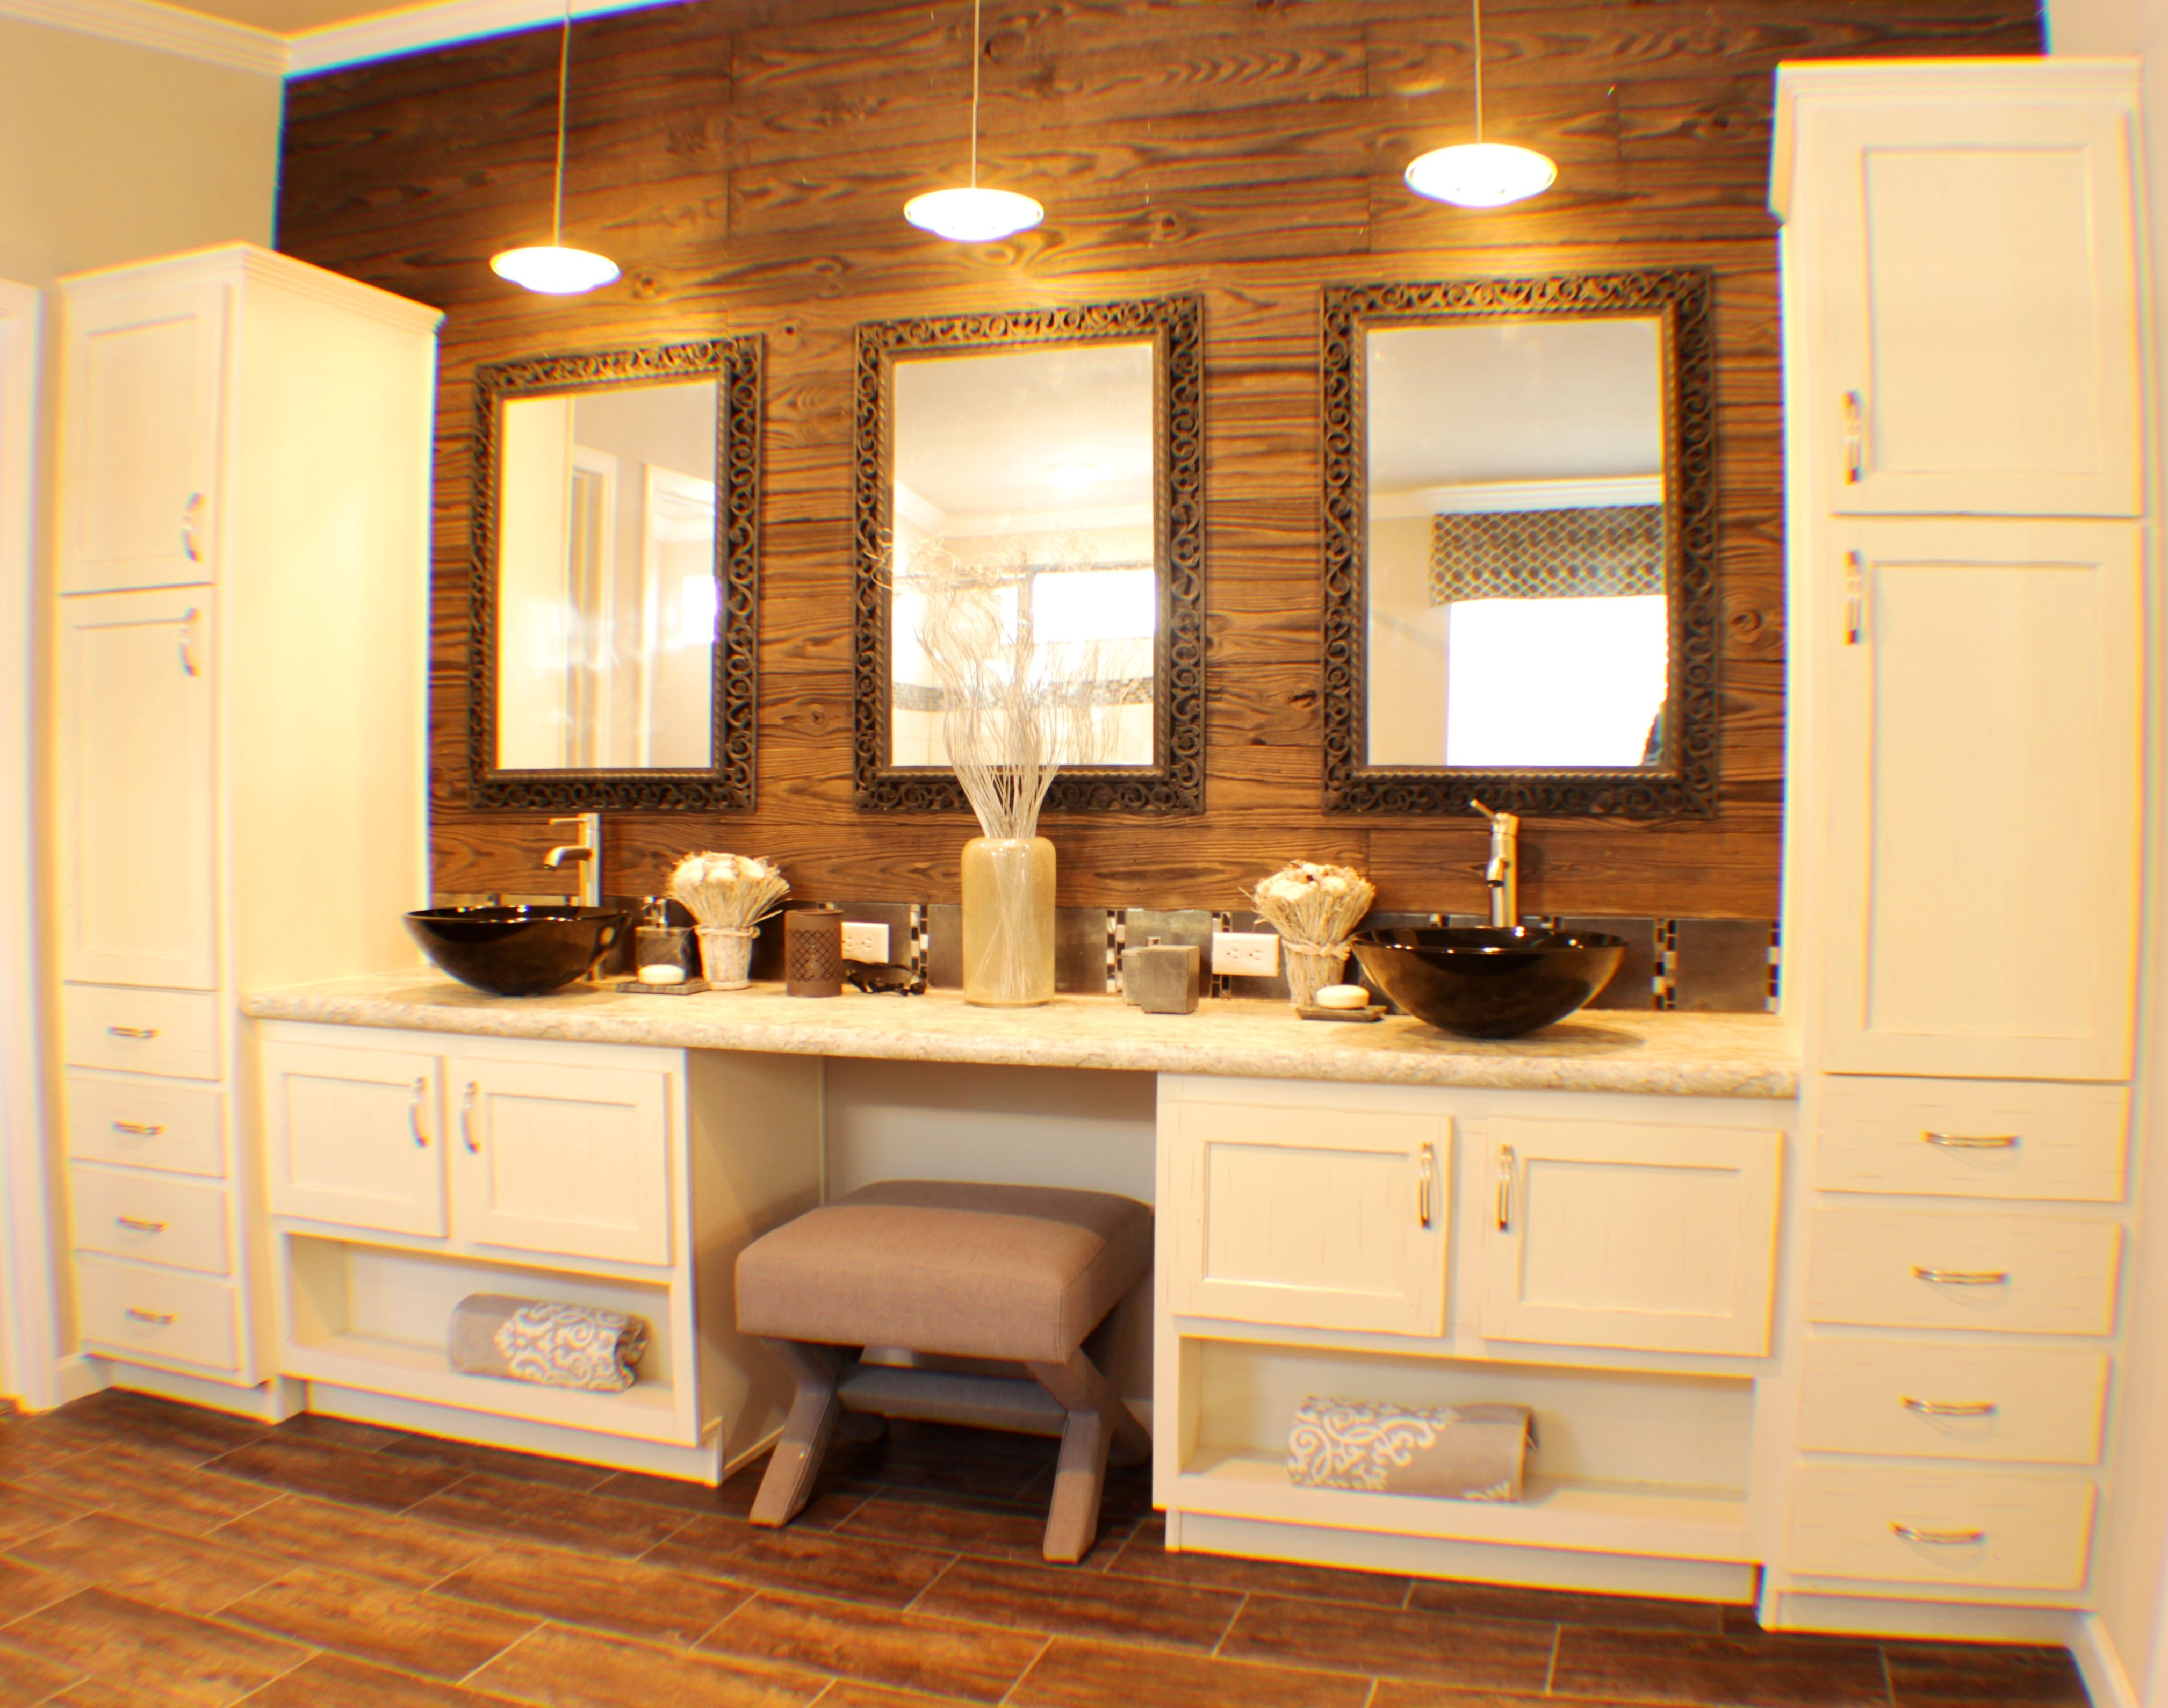 Dual Vanity Sinks, Quality Low Priced Modular Homes U0026 Mobile Homes For Sale  In San